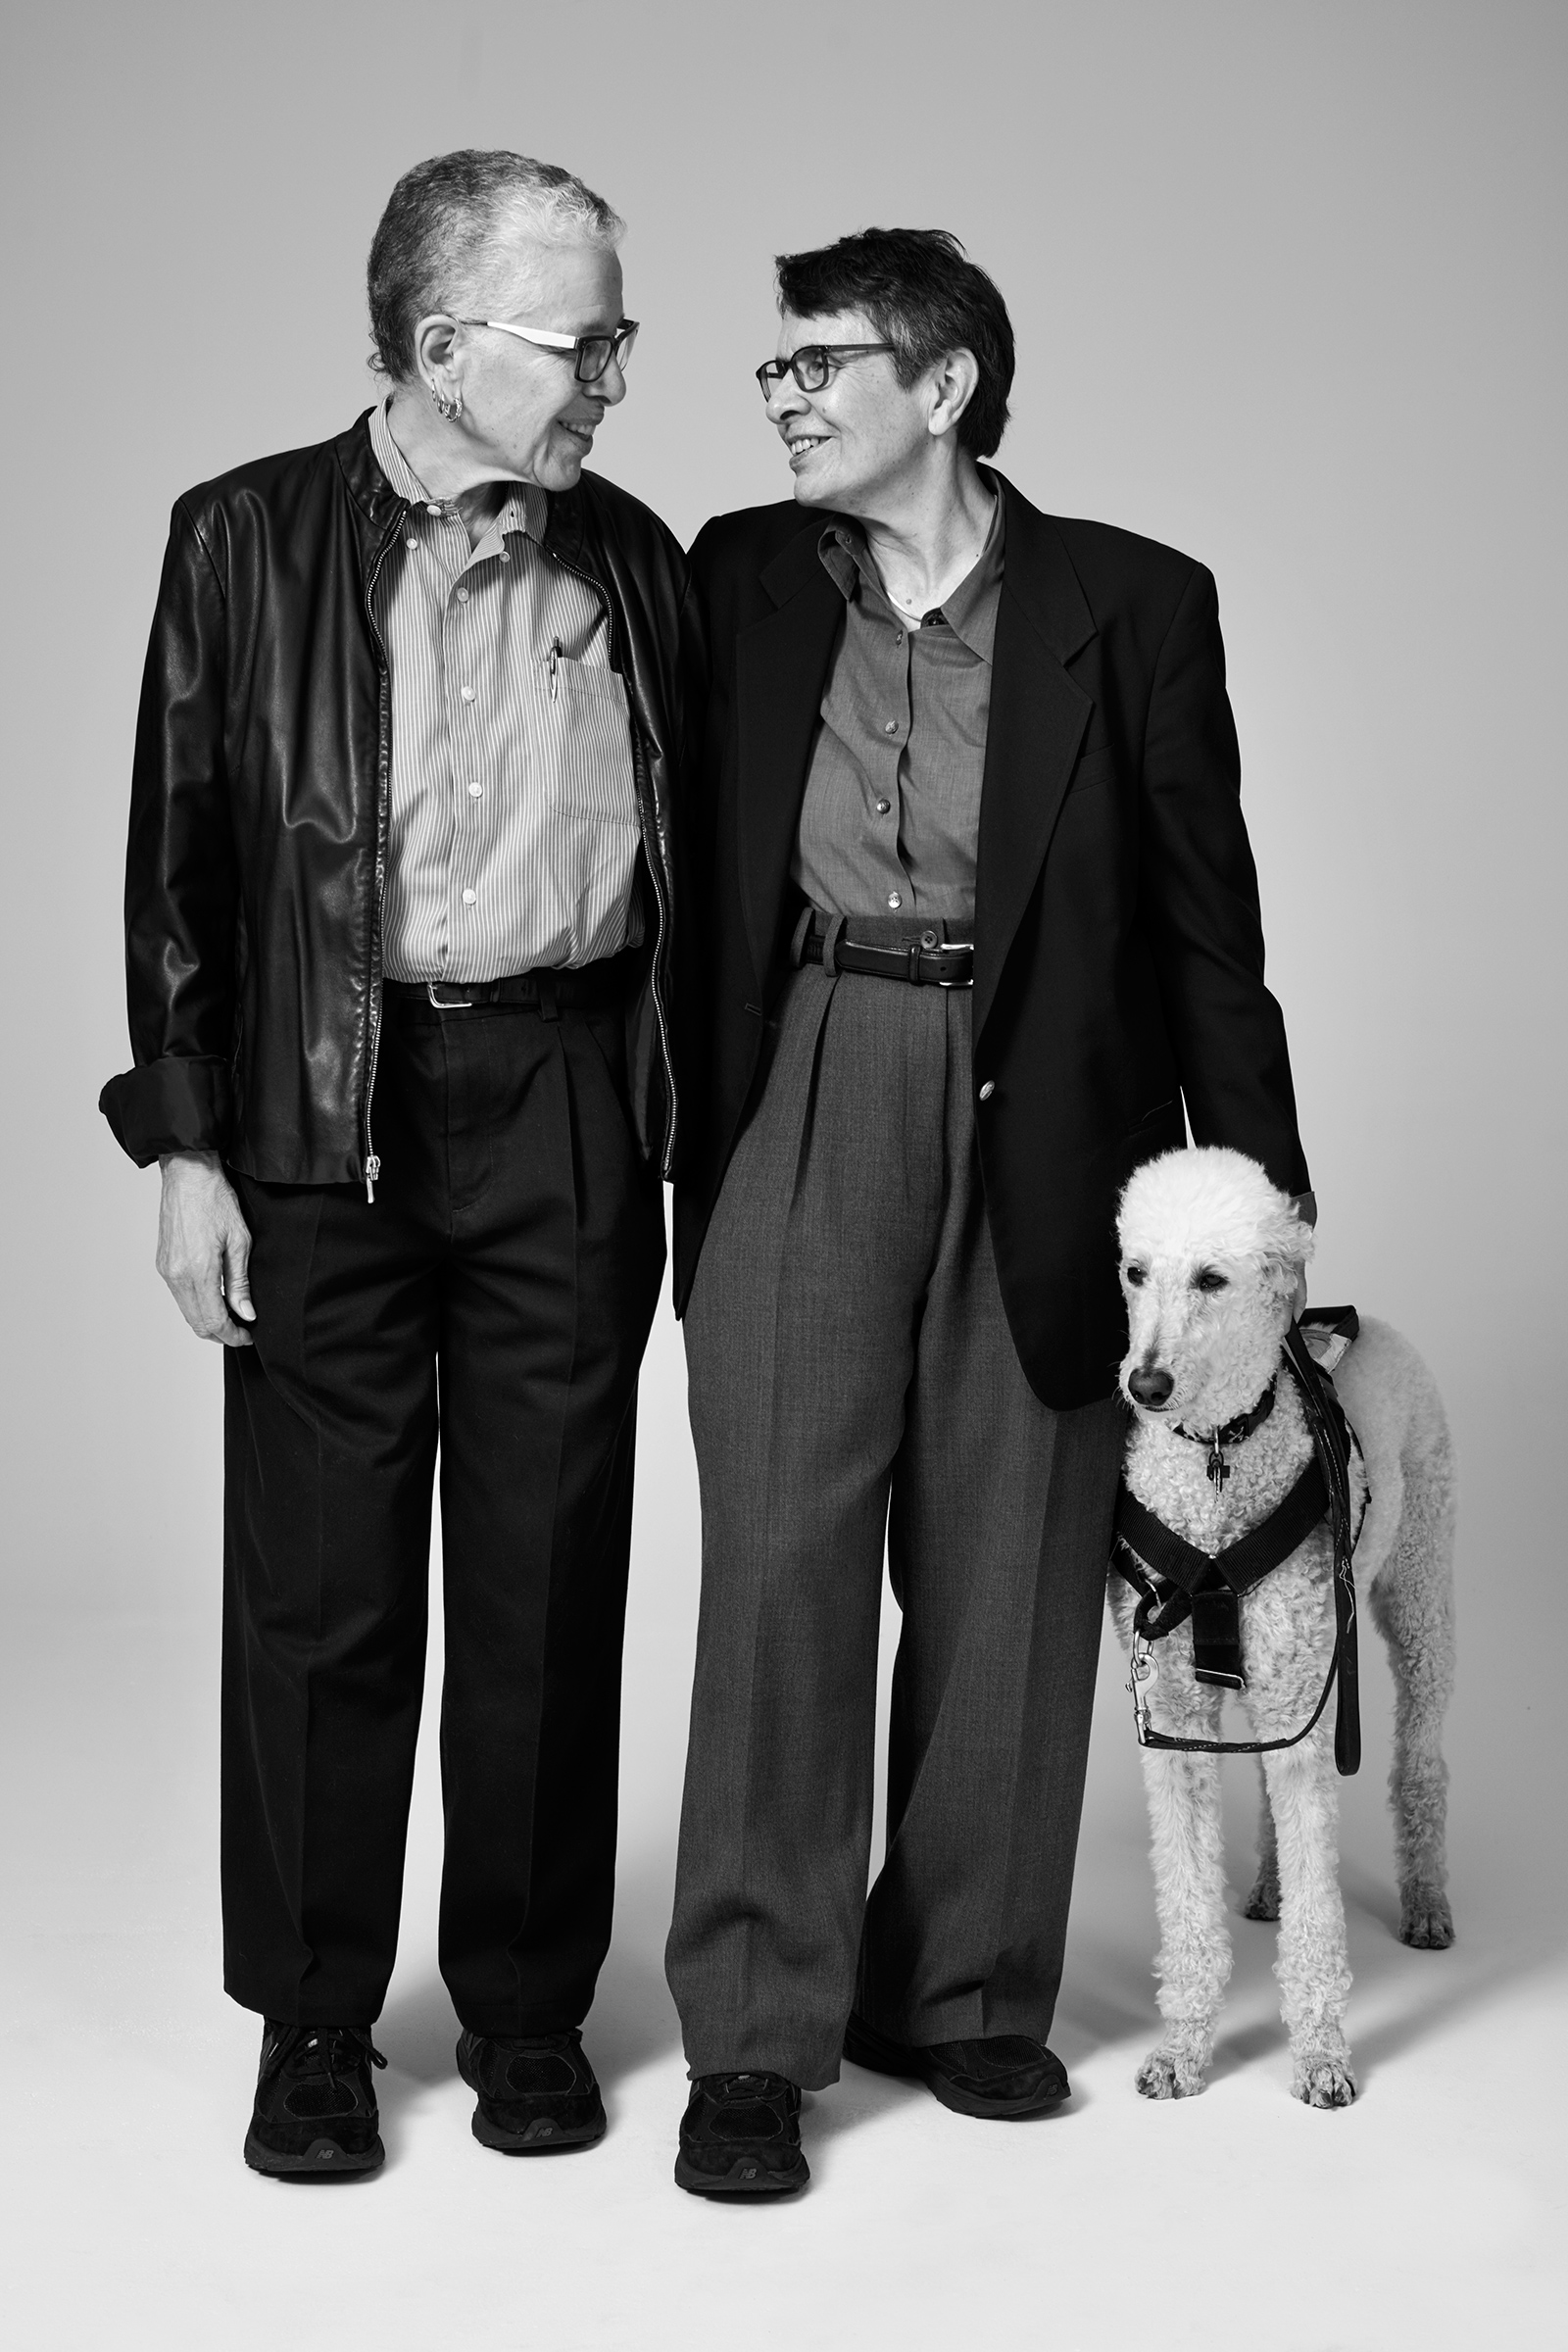 Things are really coming full circle. We saw an evolution in the direction of corporatization; now we're coming around to a more activist contemporary moment, toward a cry for seriousness and political activism as well as joy and celebration.  — Karla Jay, a professor emerita at Pace University, between her spouse Karen F. Kerner and her guide dog Duchess. Jay was an early member of the Gay Liberation Front.